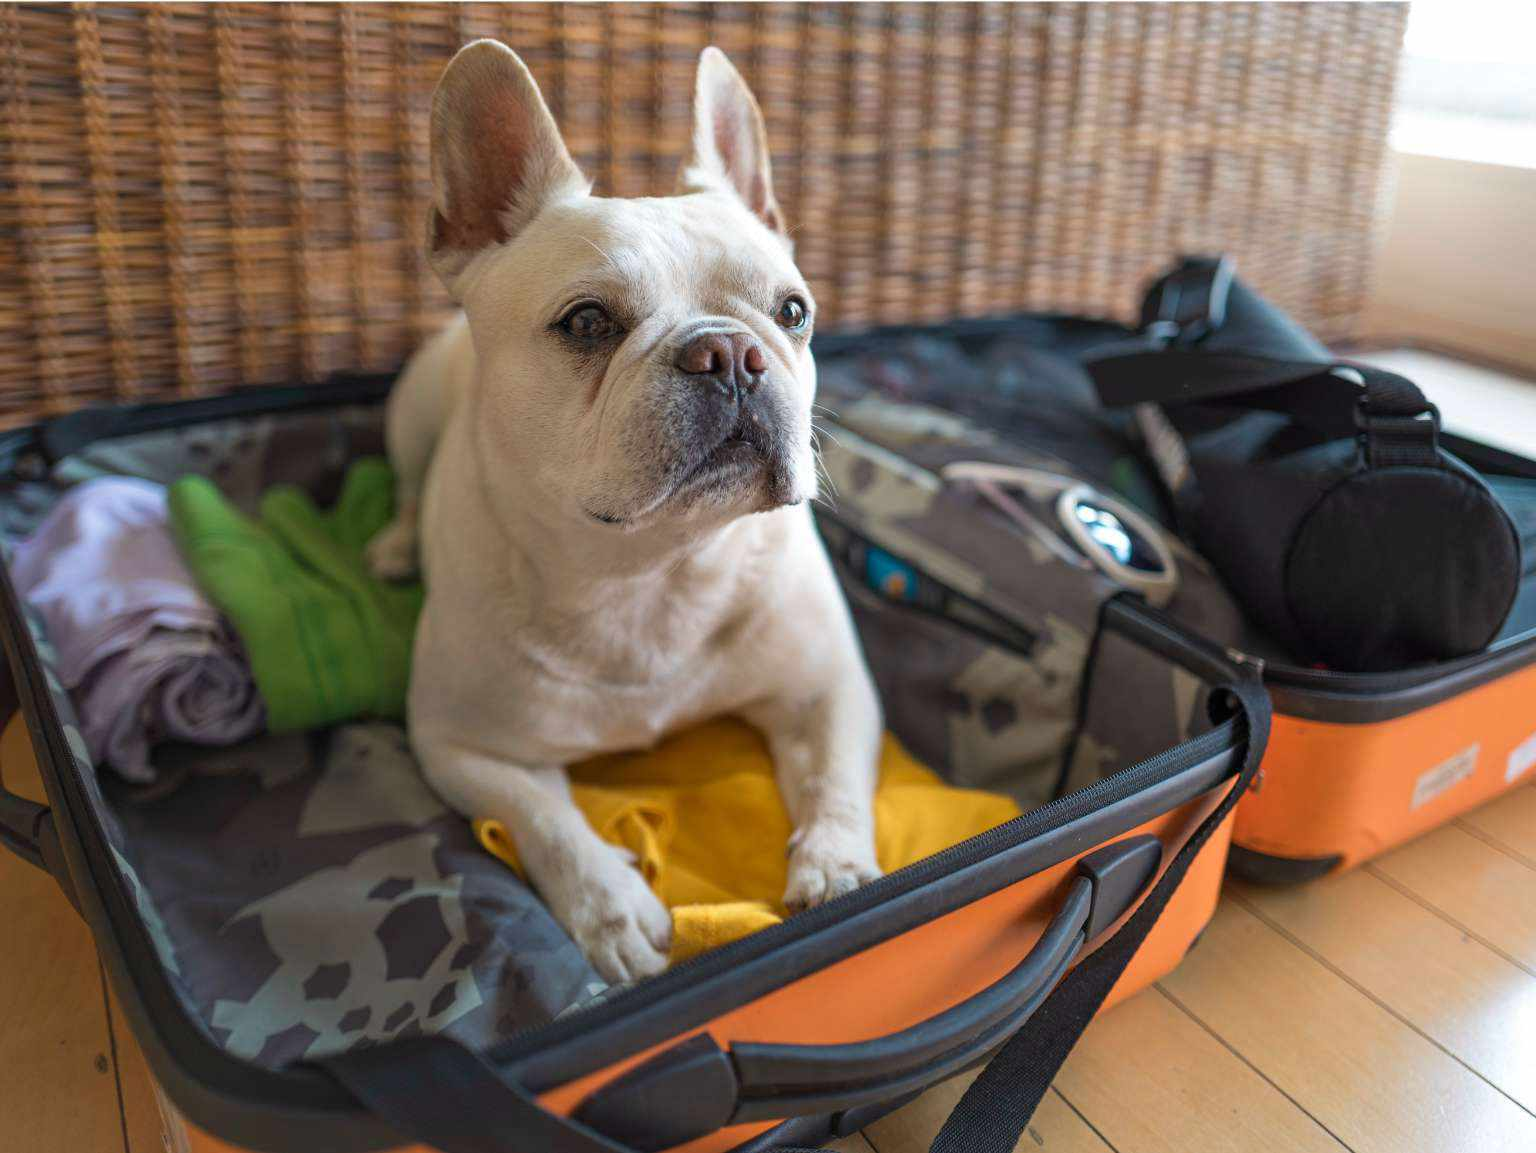 A French bulldog laying on top of an open suitcase